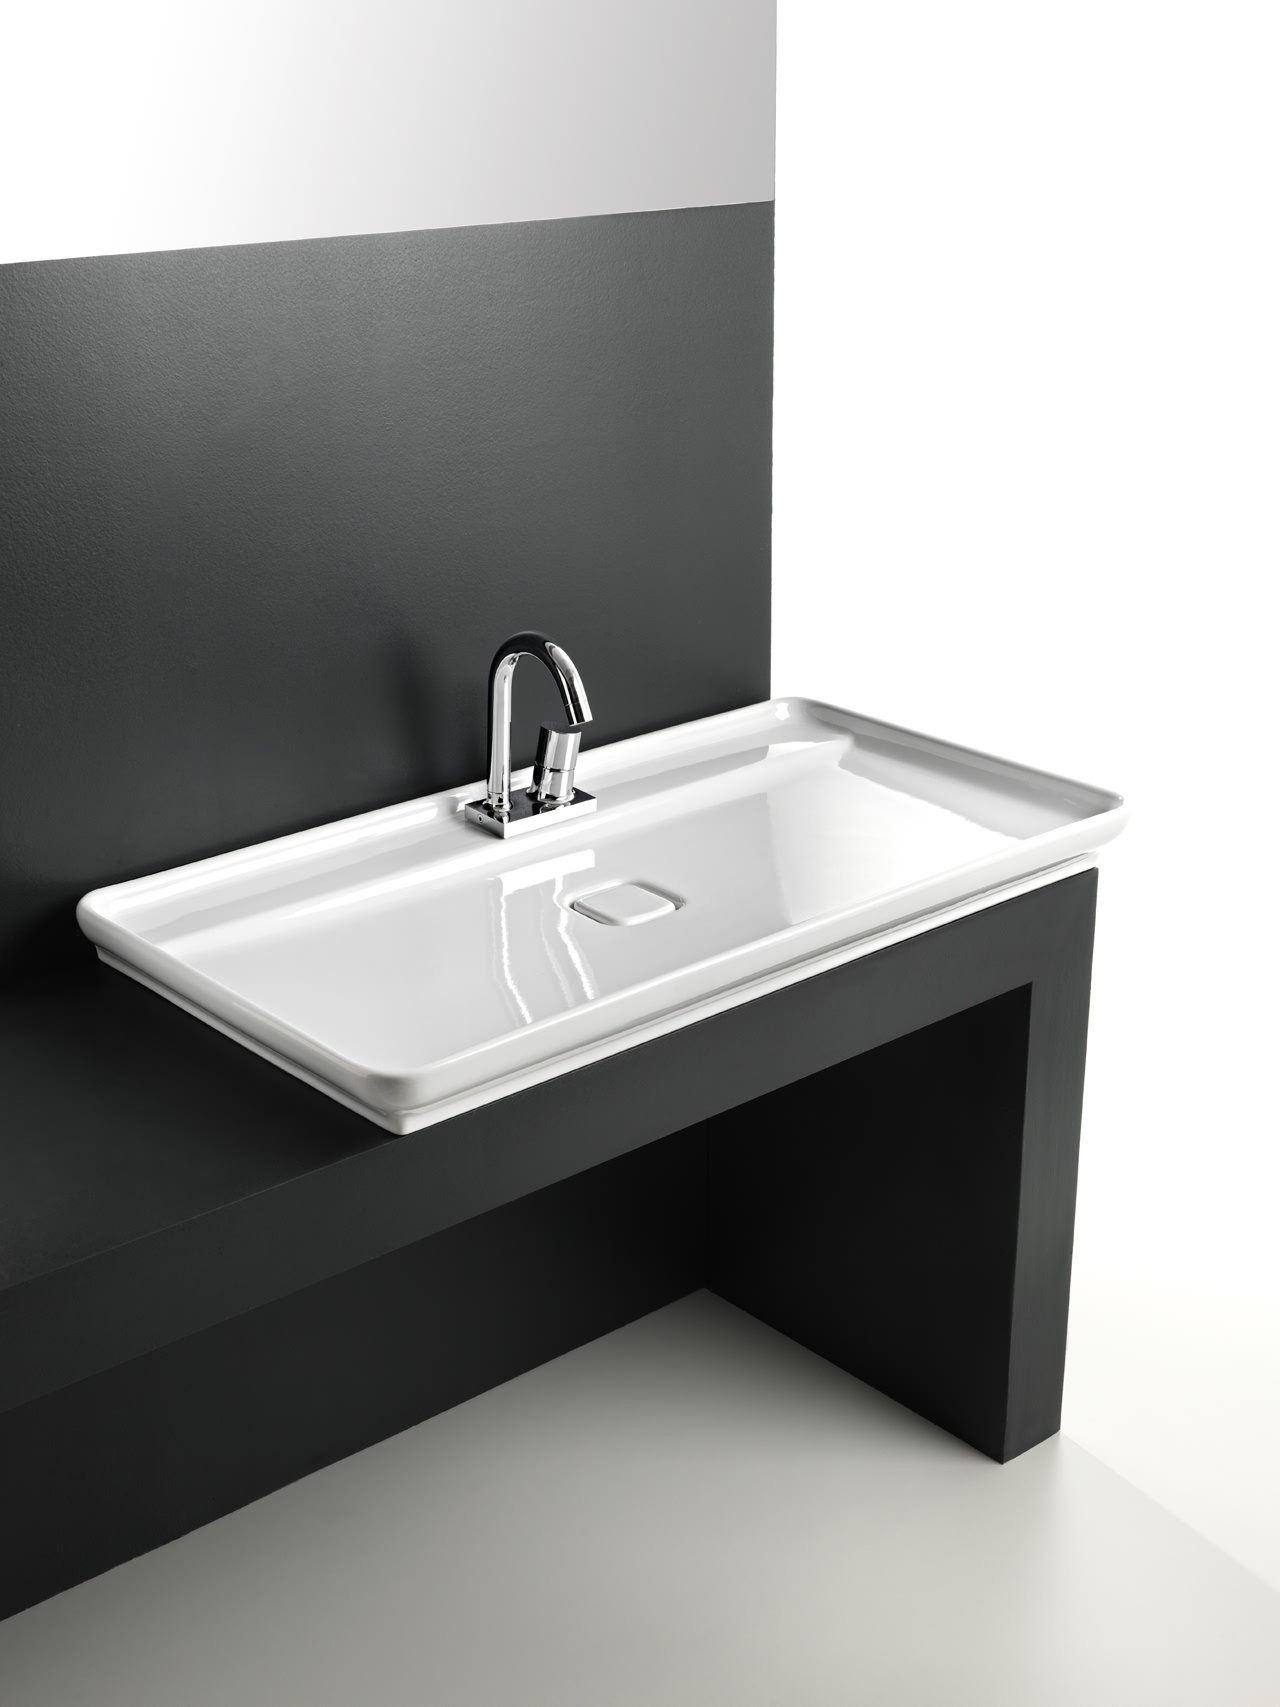 awesome salle de bain lavabo inox images awesome. Black Bedroom Furniture Sets. Home Design Ideas